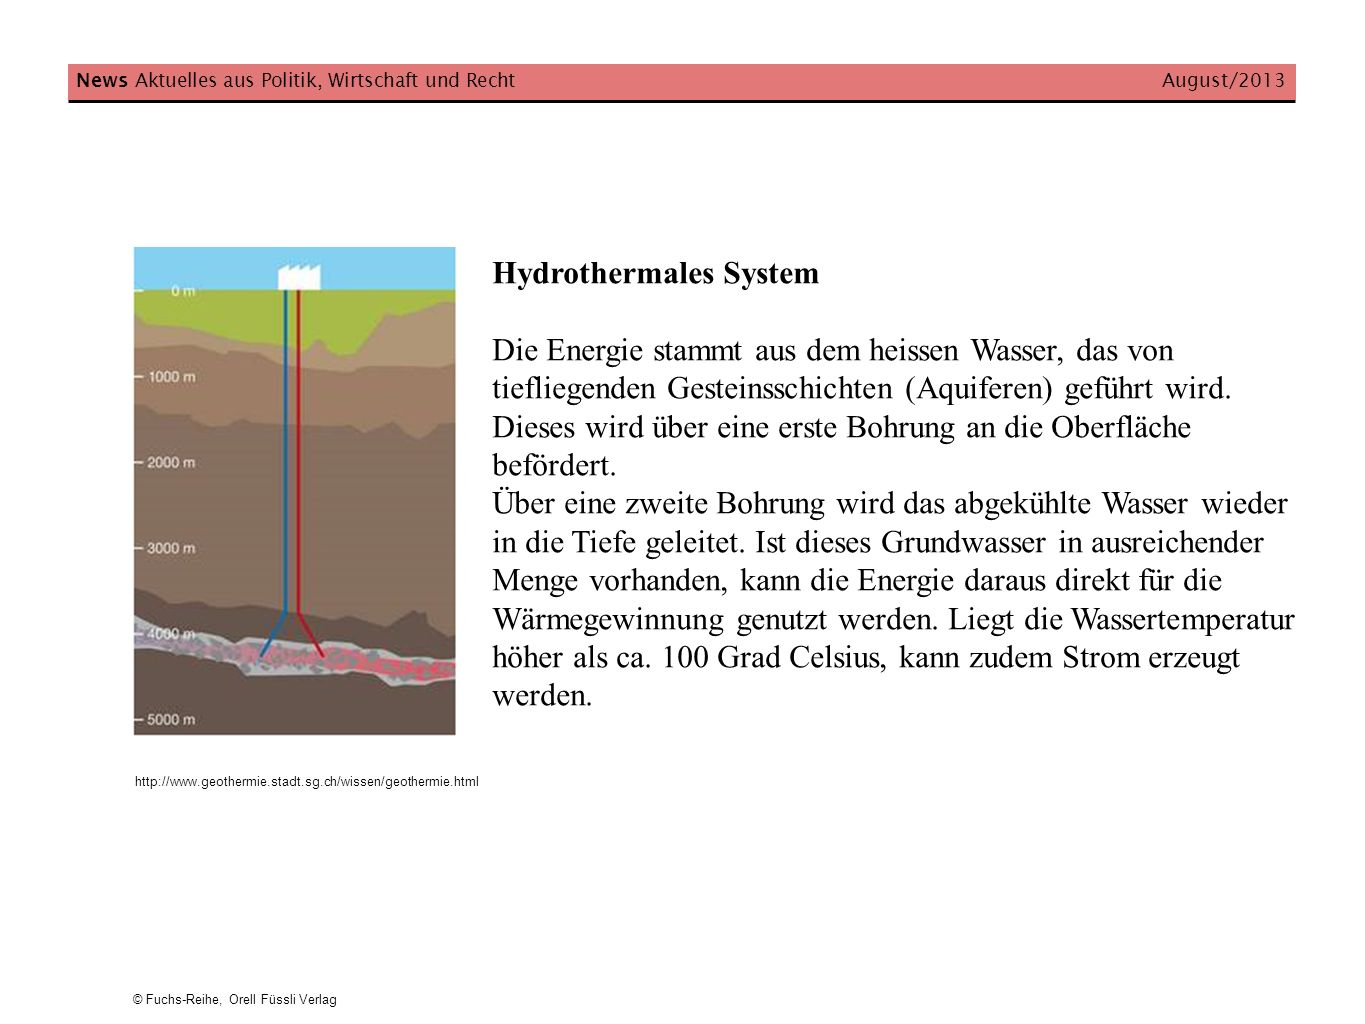 Hydrothermales System